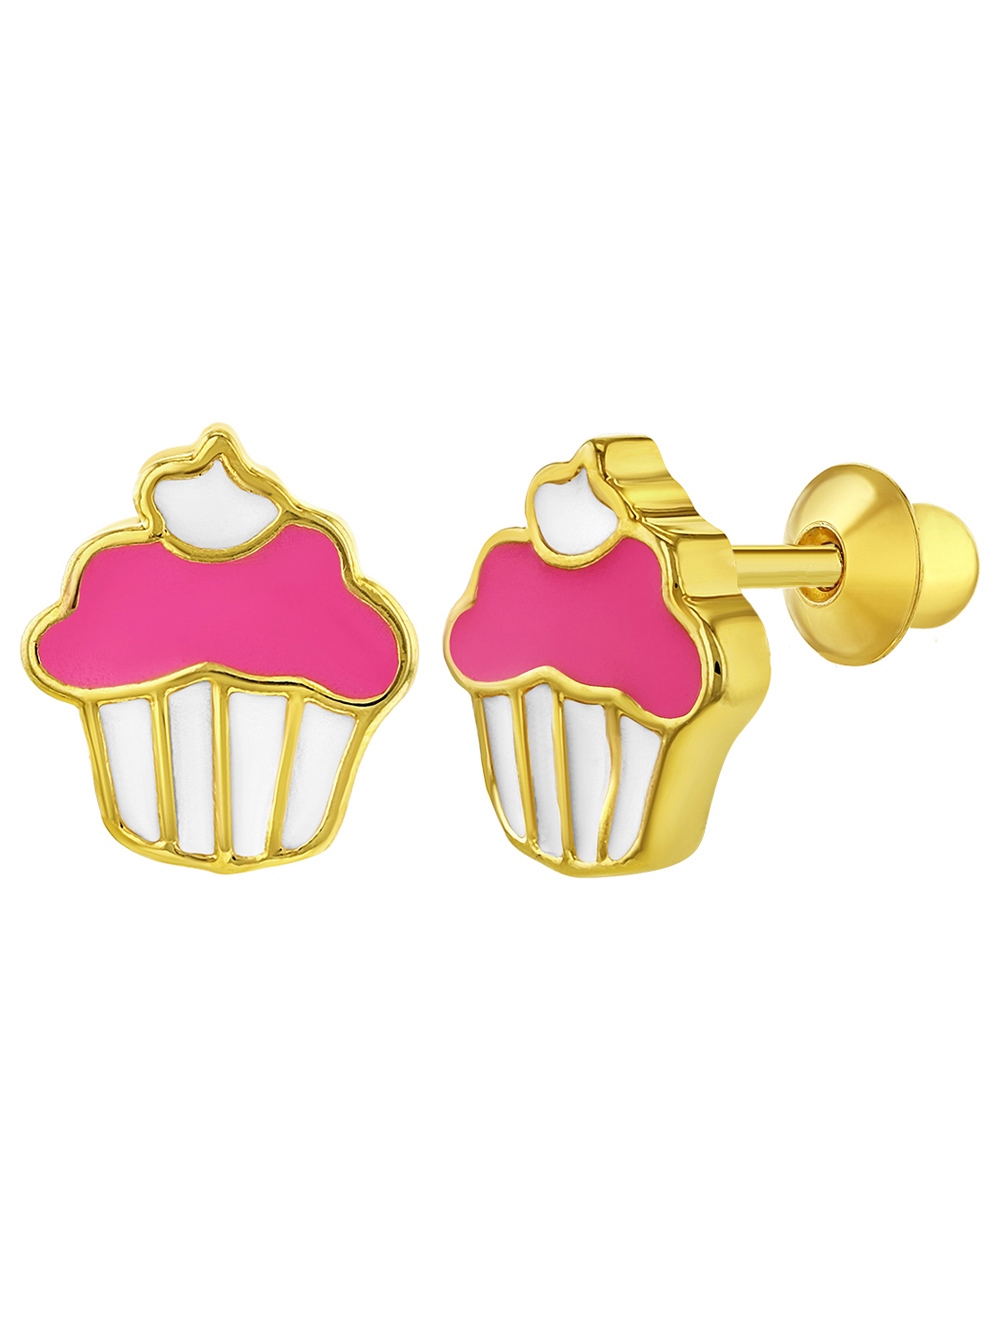 In Season Jewelry 18k Gold Plated Pink Enamel Cupcake Earrings Screw Back for Girls